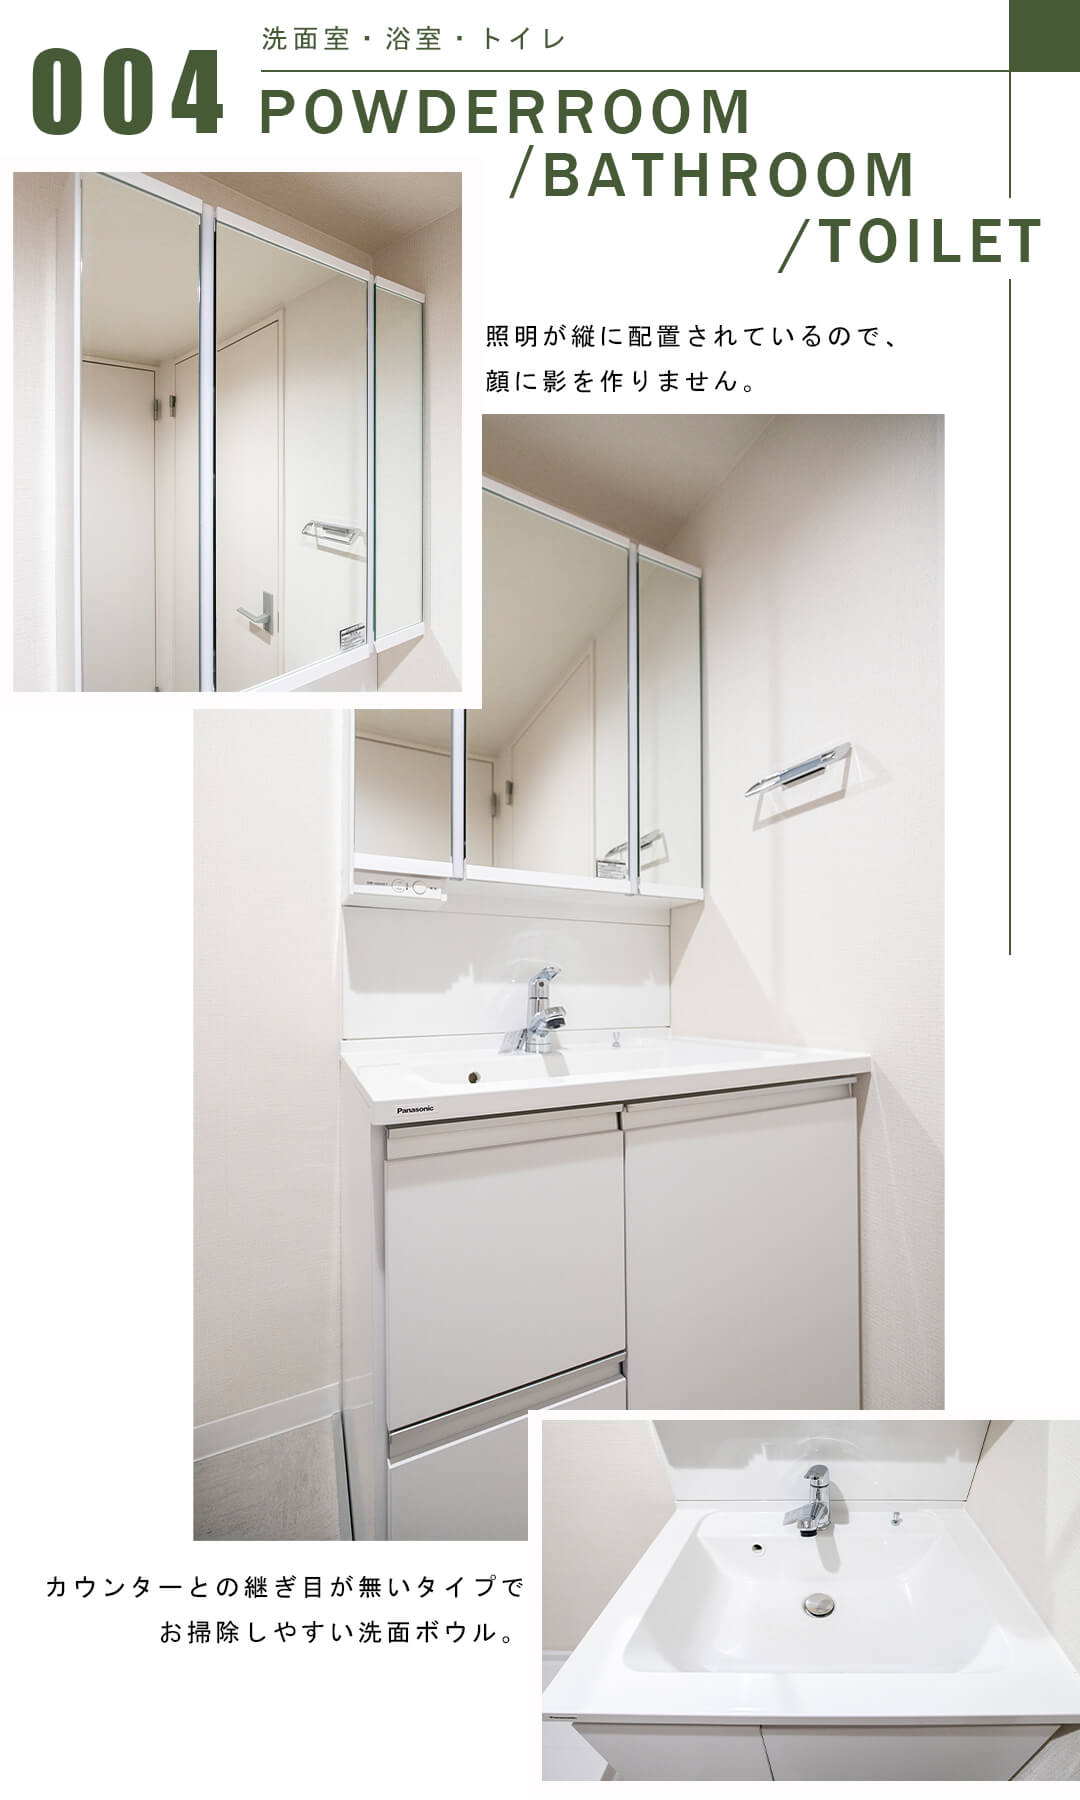 004浴室,洗面室,トイレ,Bathroom,Powderroom,Toilet